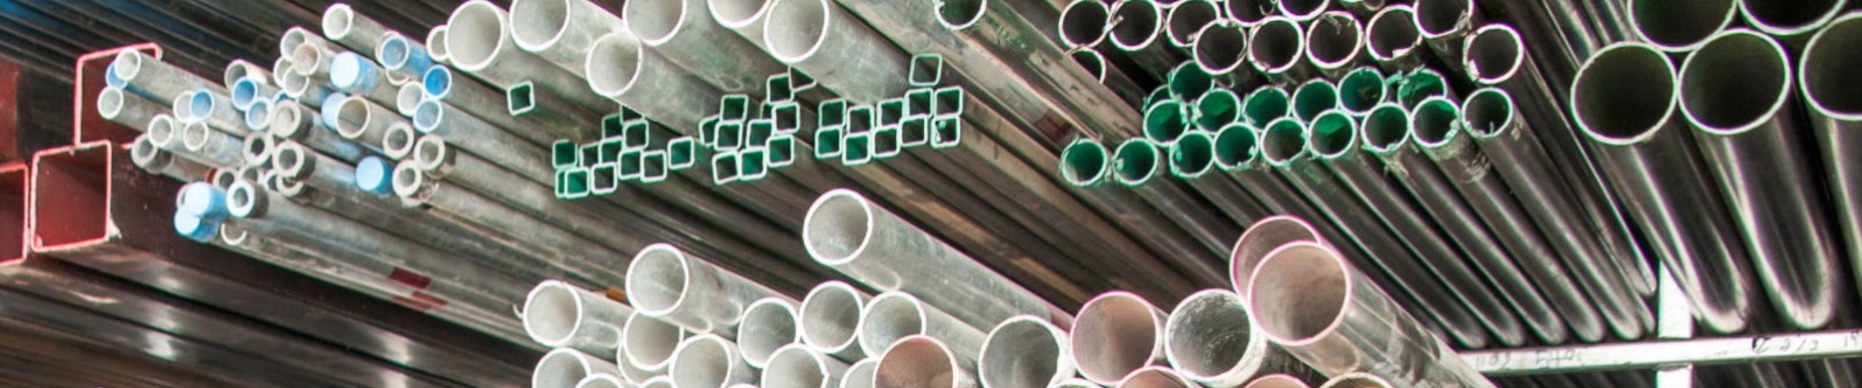 Stainless Steel Tubing banner